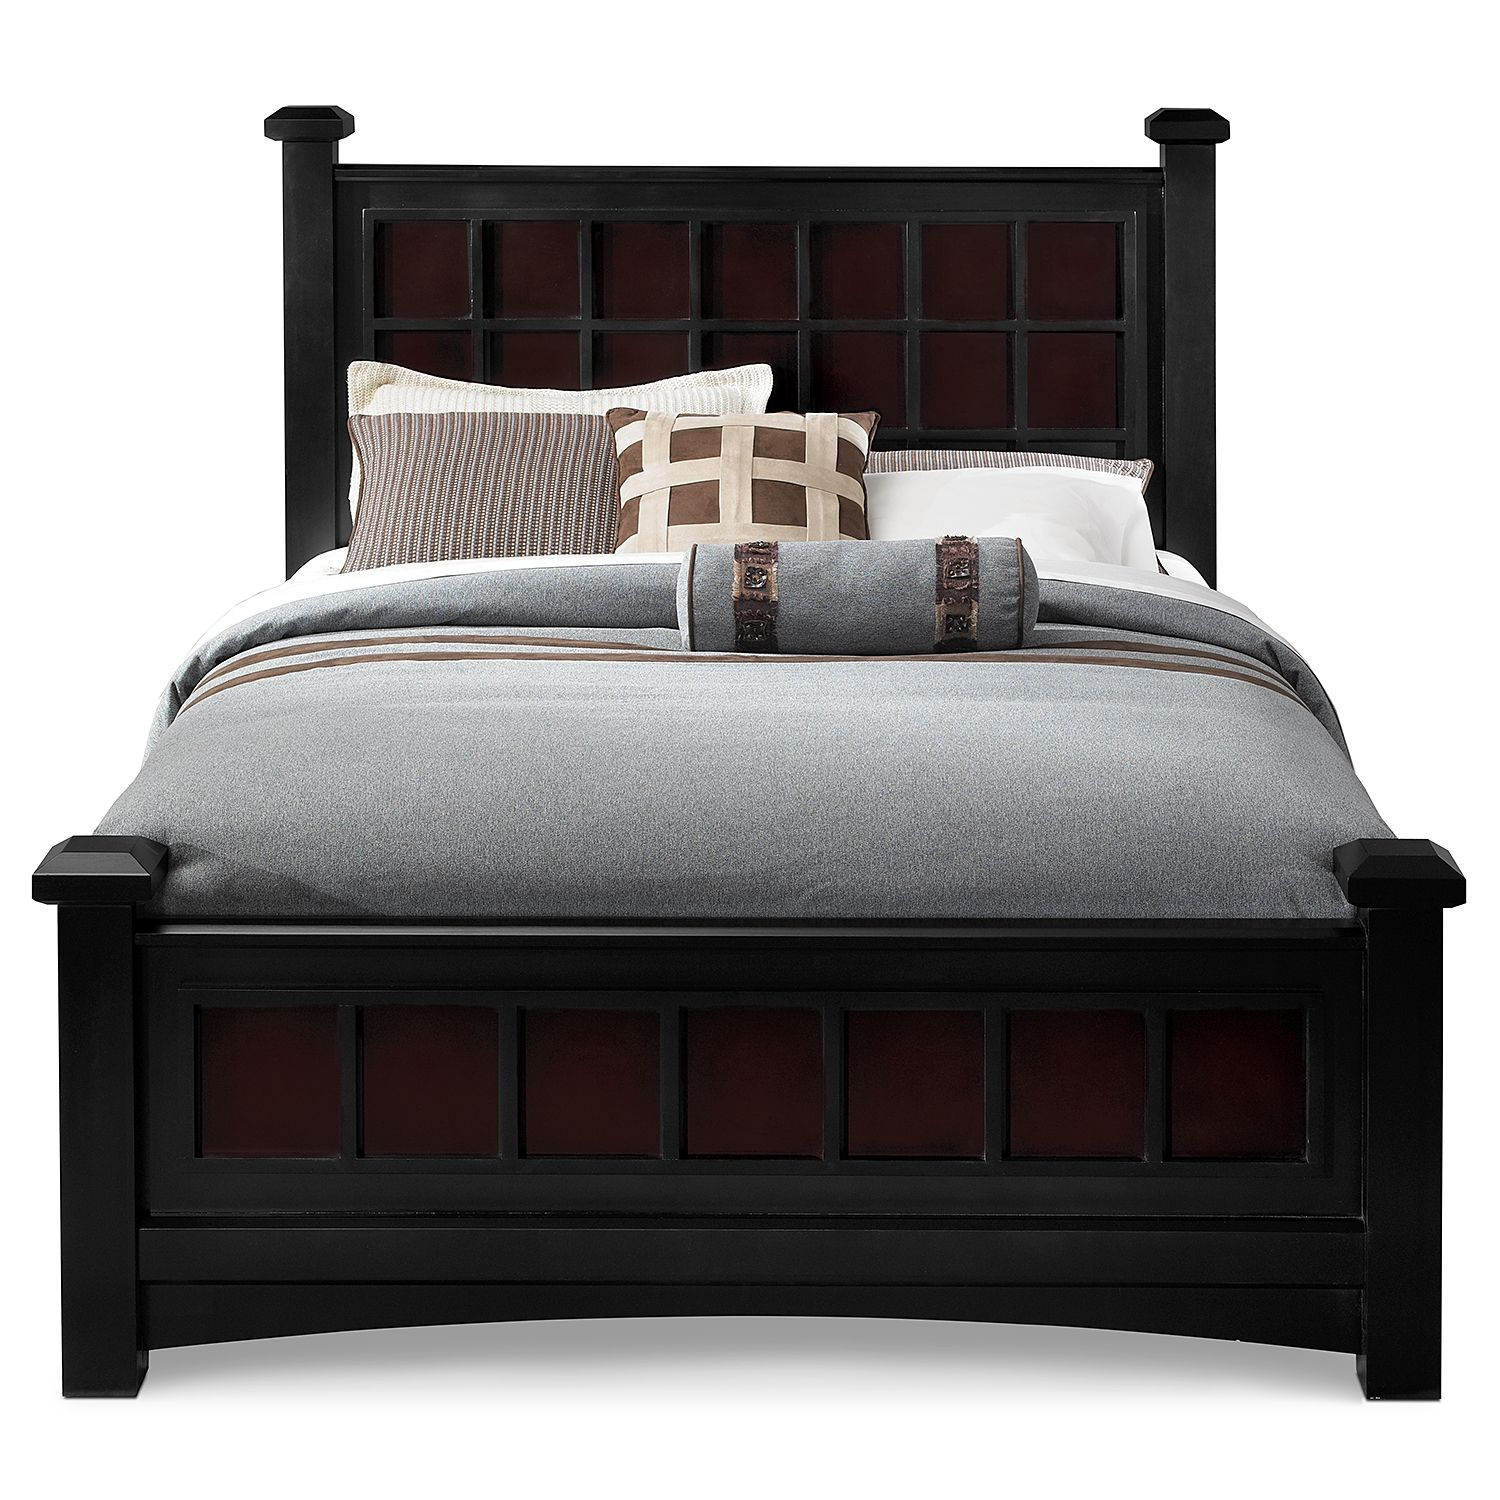 King Bed Espresso Well Designed Full Plus Beds With Built In